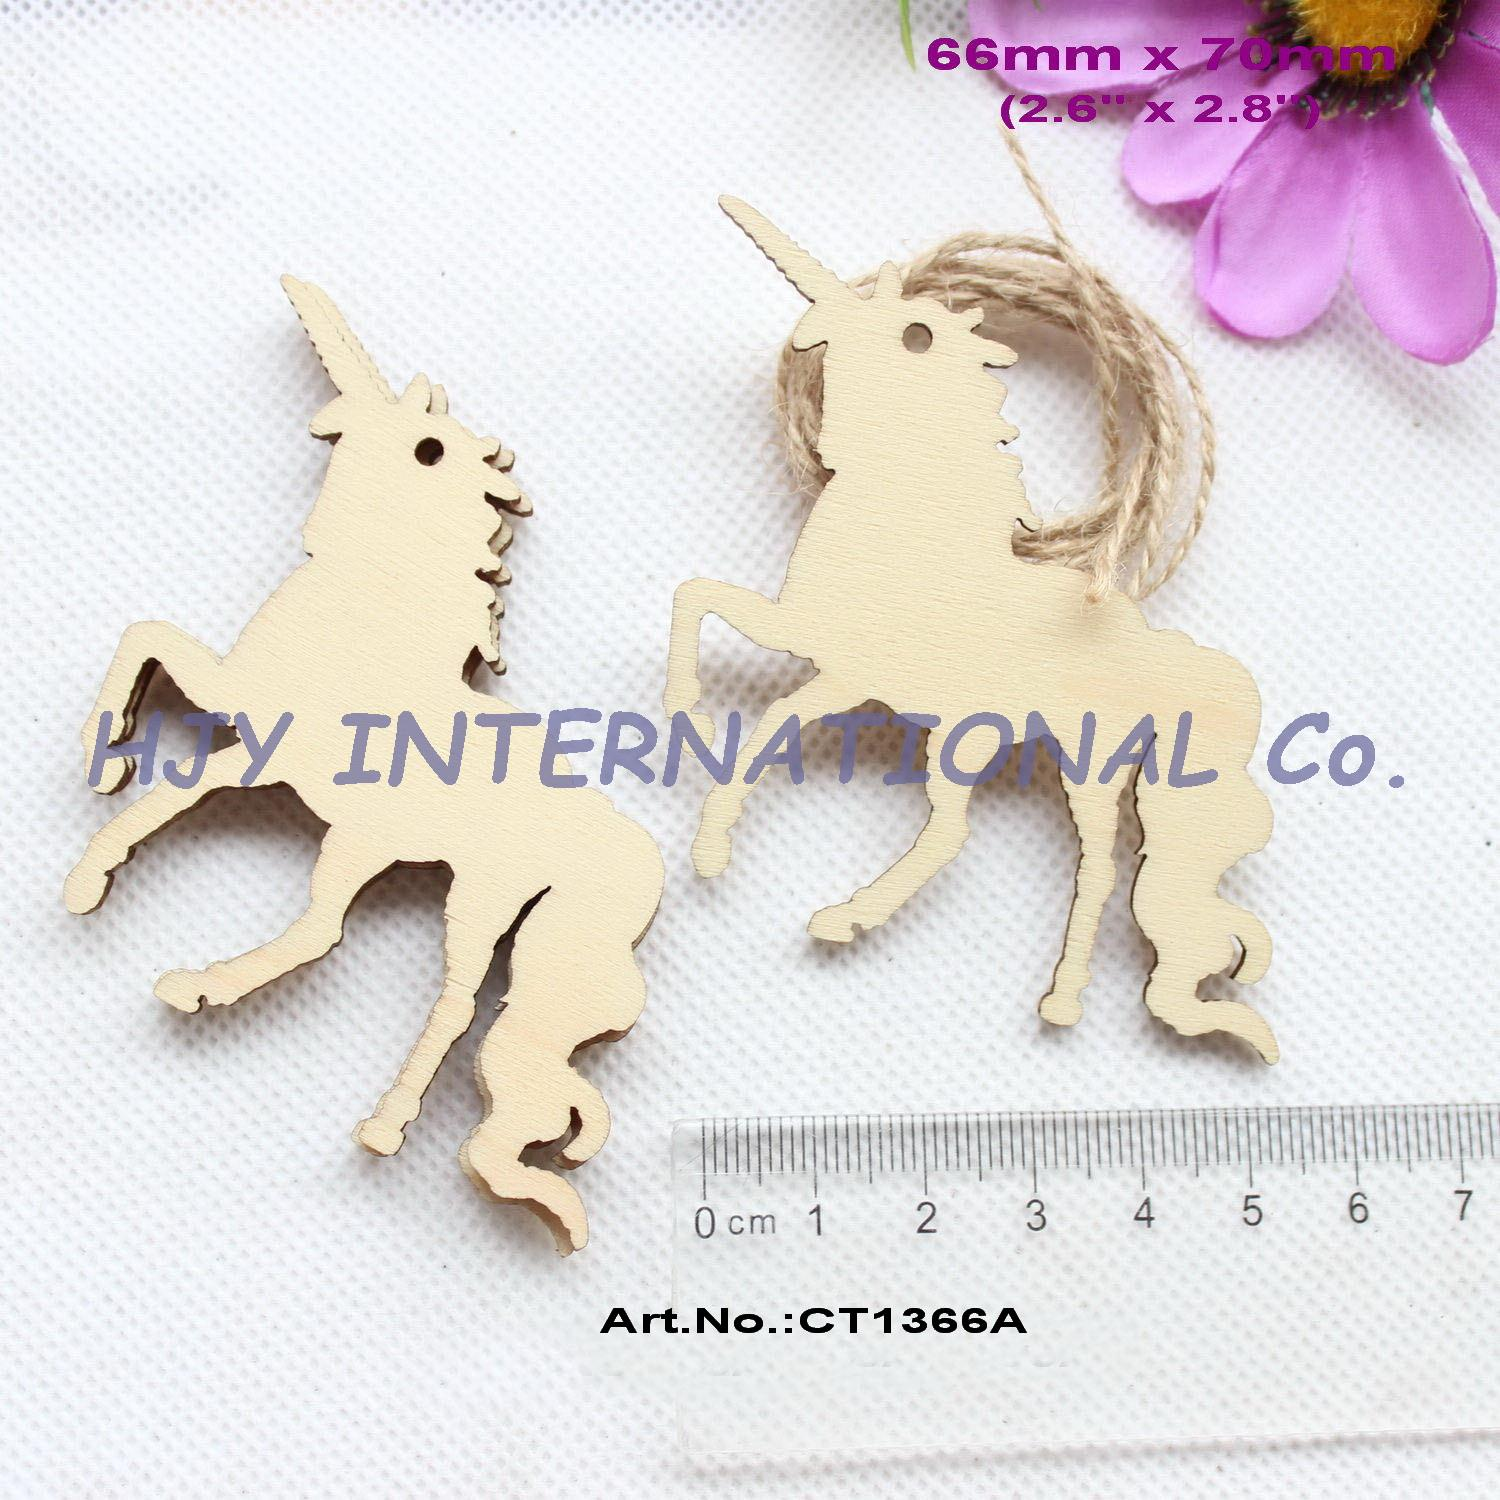 (50pcs/lot) 70mm Natural Blank Wooden Unicorn Oraments Rustic Wood Tags Craft Supplies 2.8-CT1366A